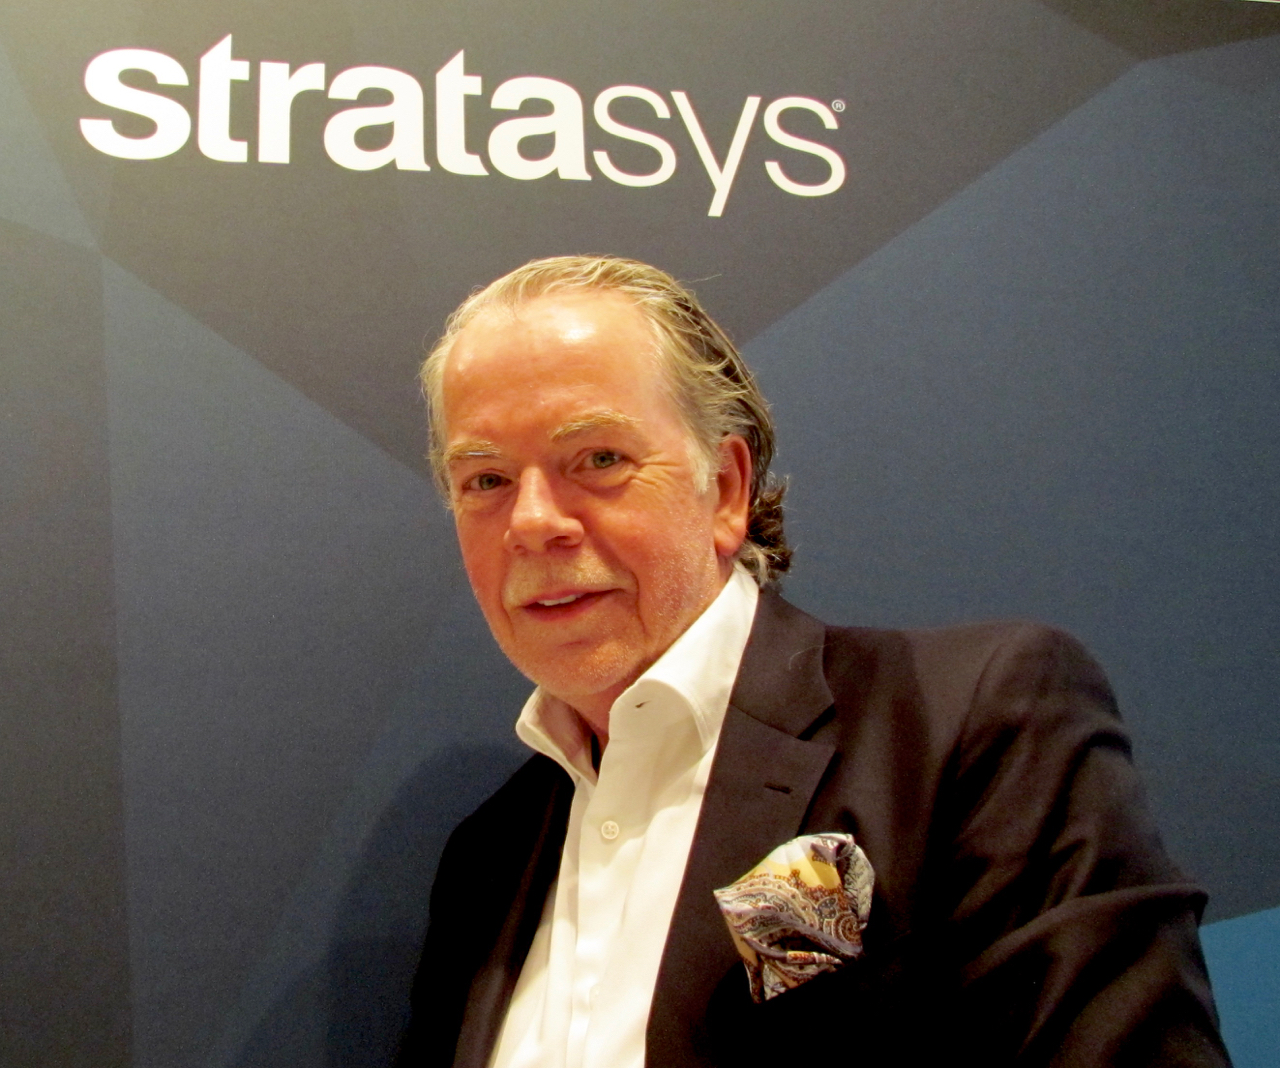 One on One With Stratasys' Andy Middleton: Part 2